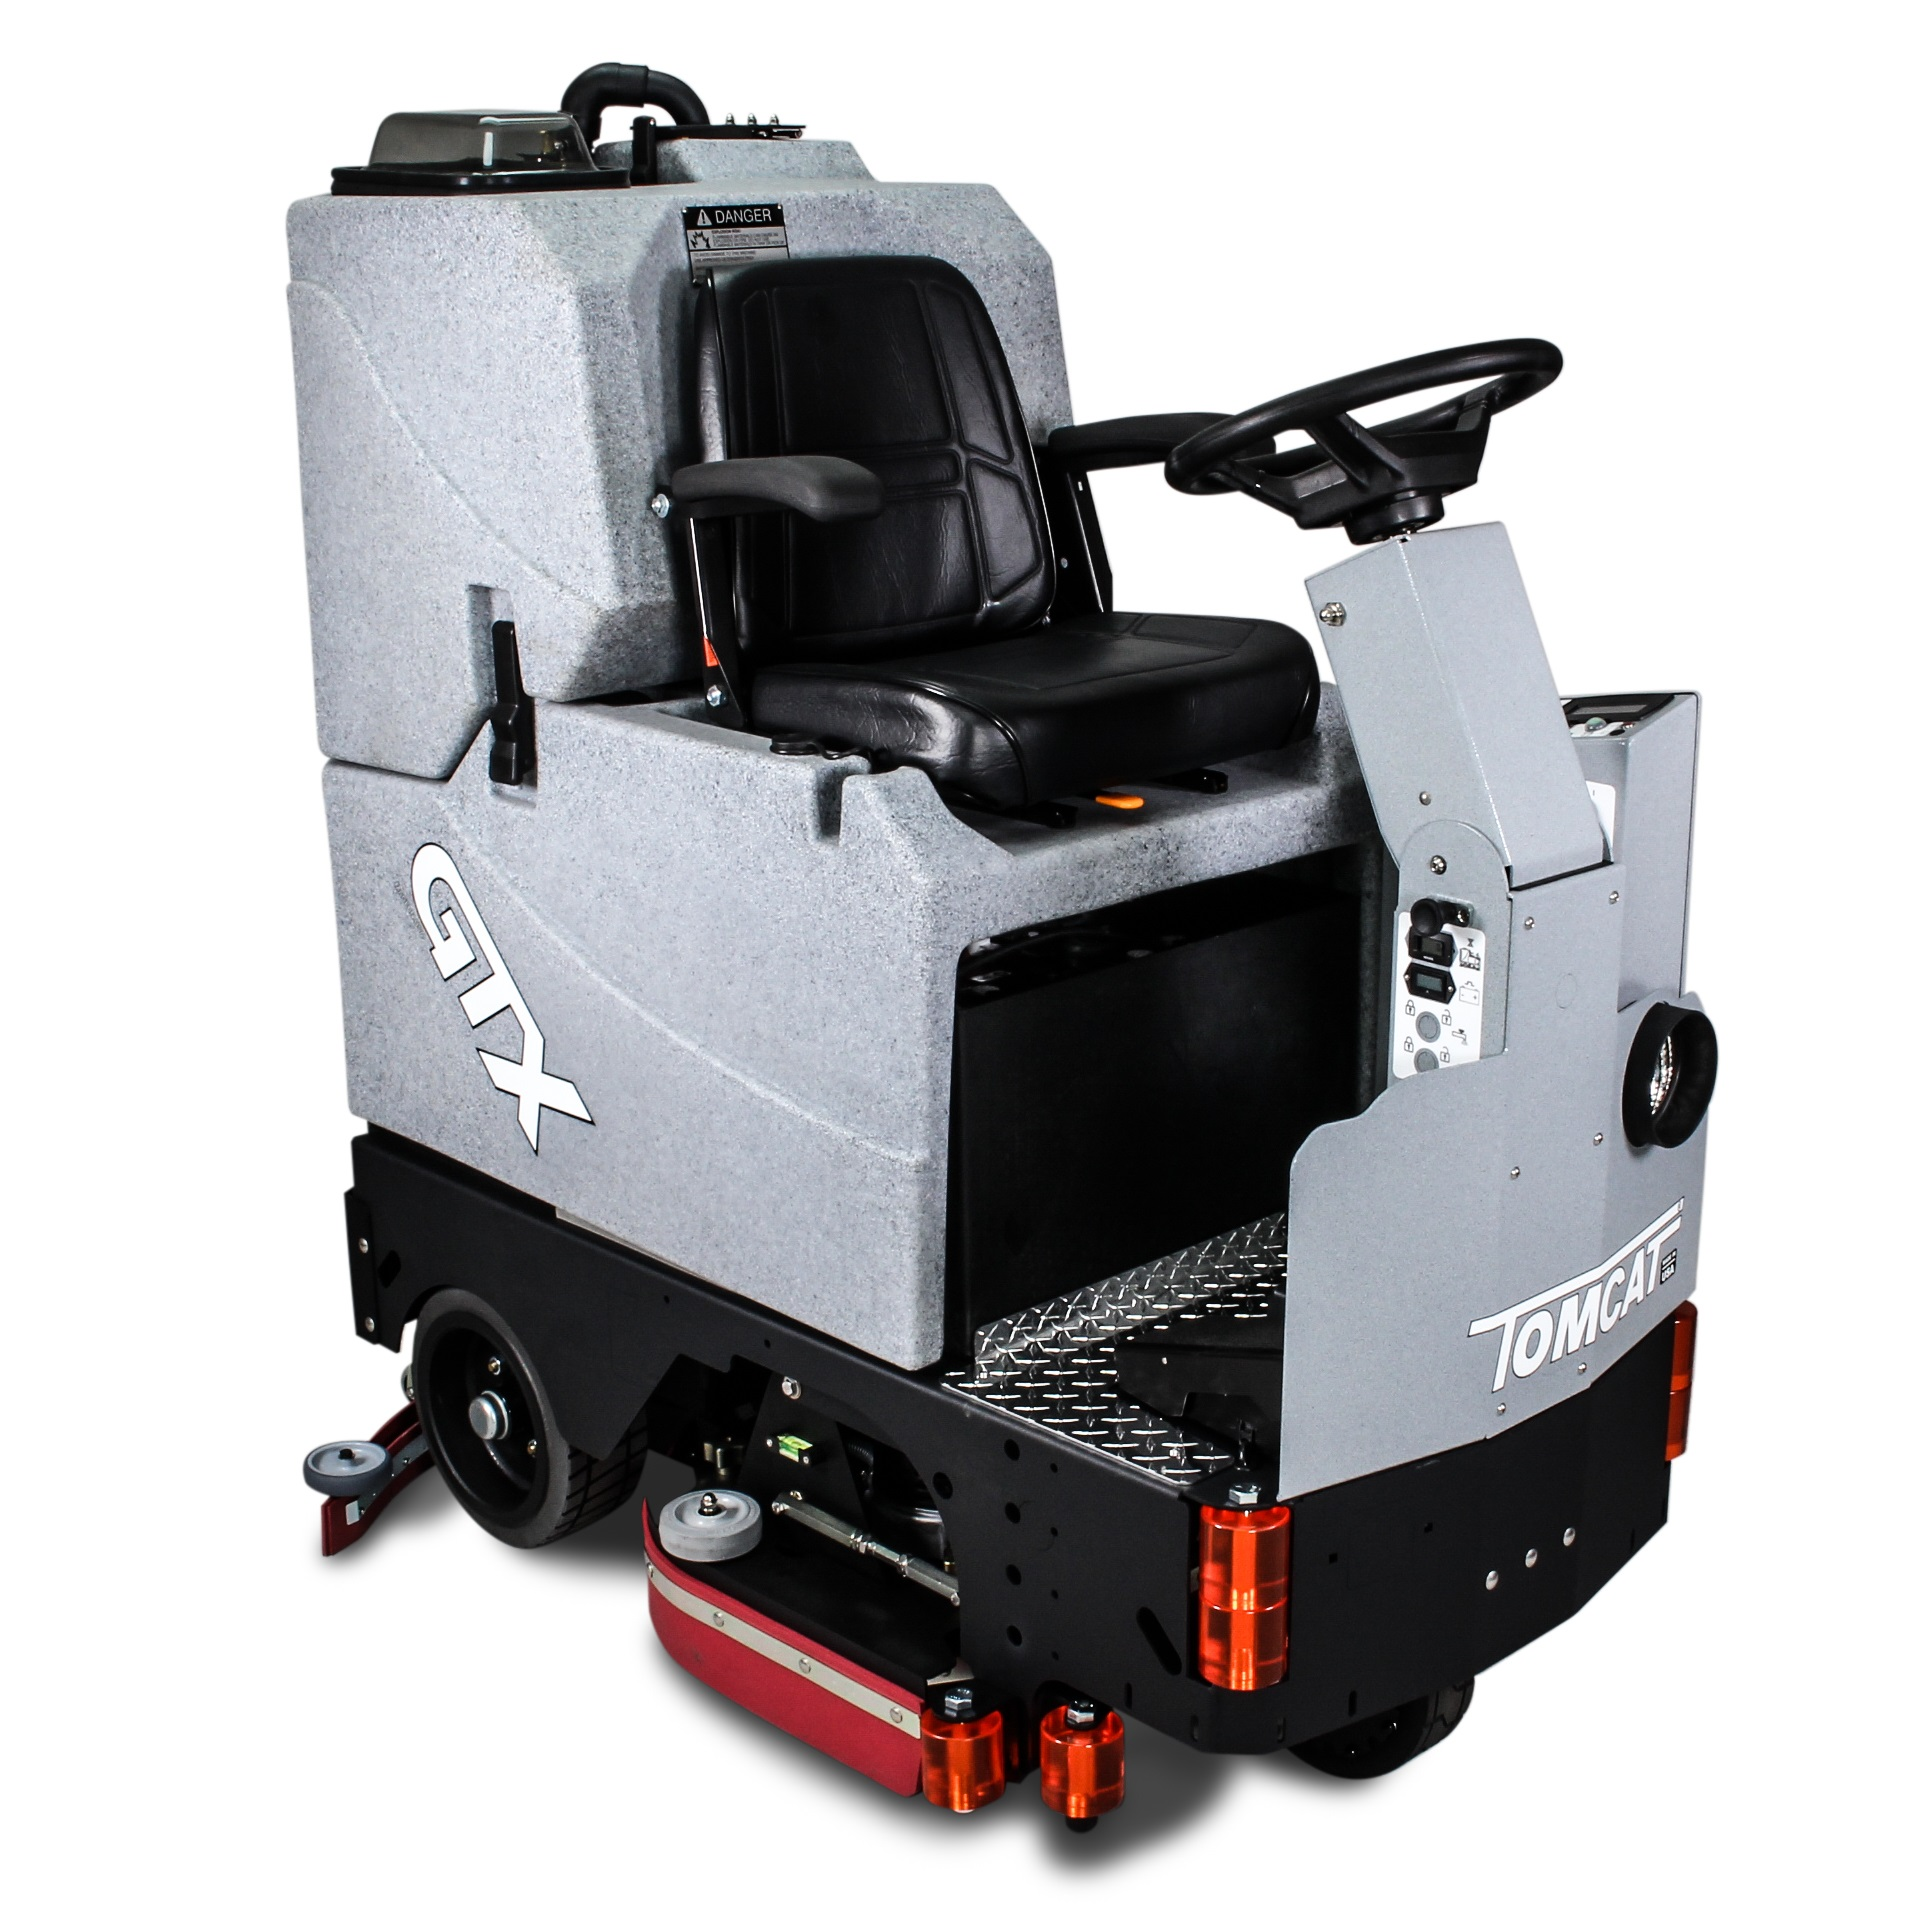 Heavy duty ride-on scrubber drier, highly productive floor cleaning & preparation